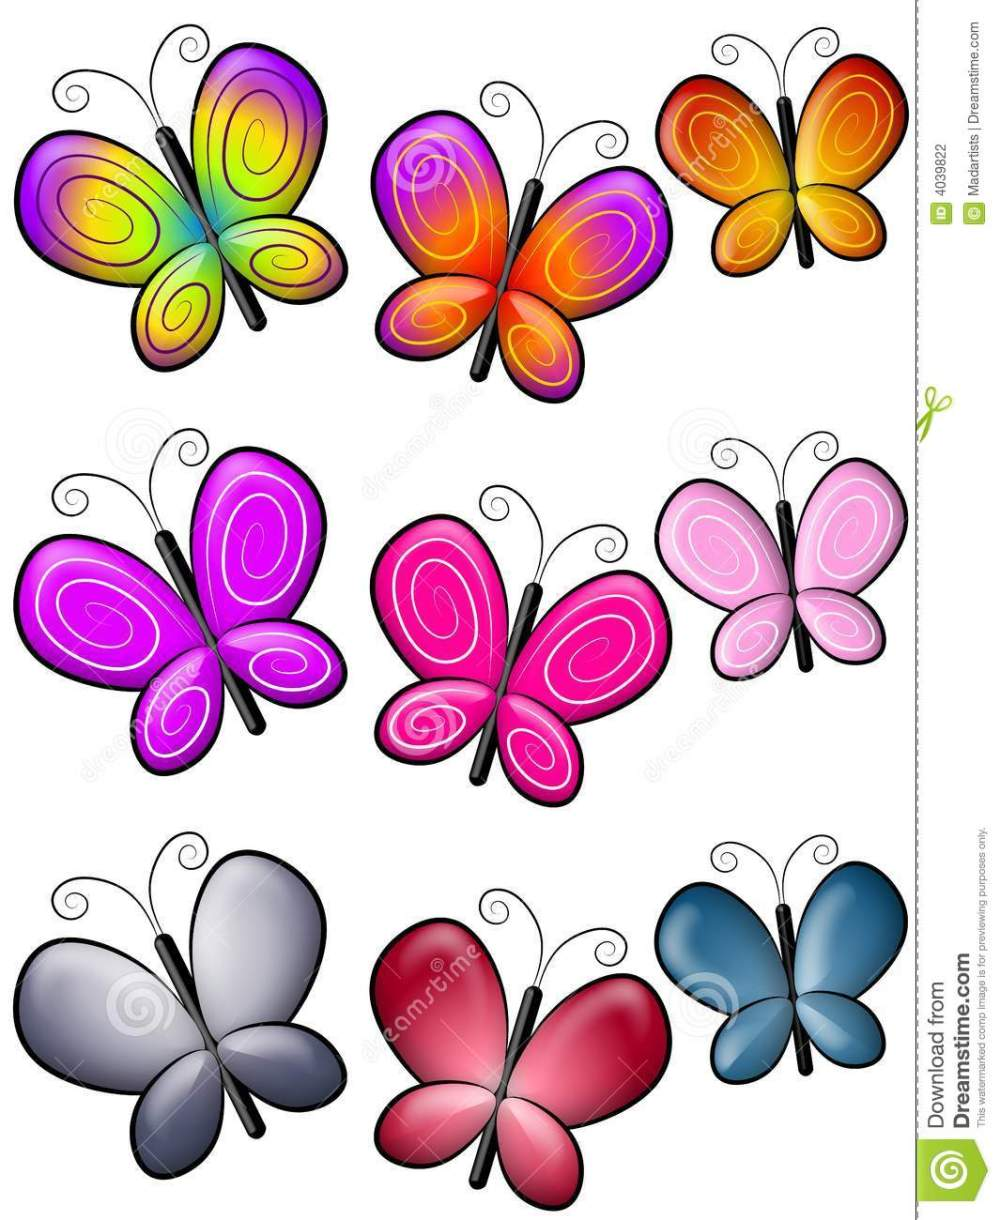 medium resolution of a clip art illustration featuring colourful butterfly borders or dividers